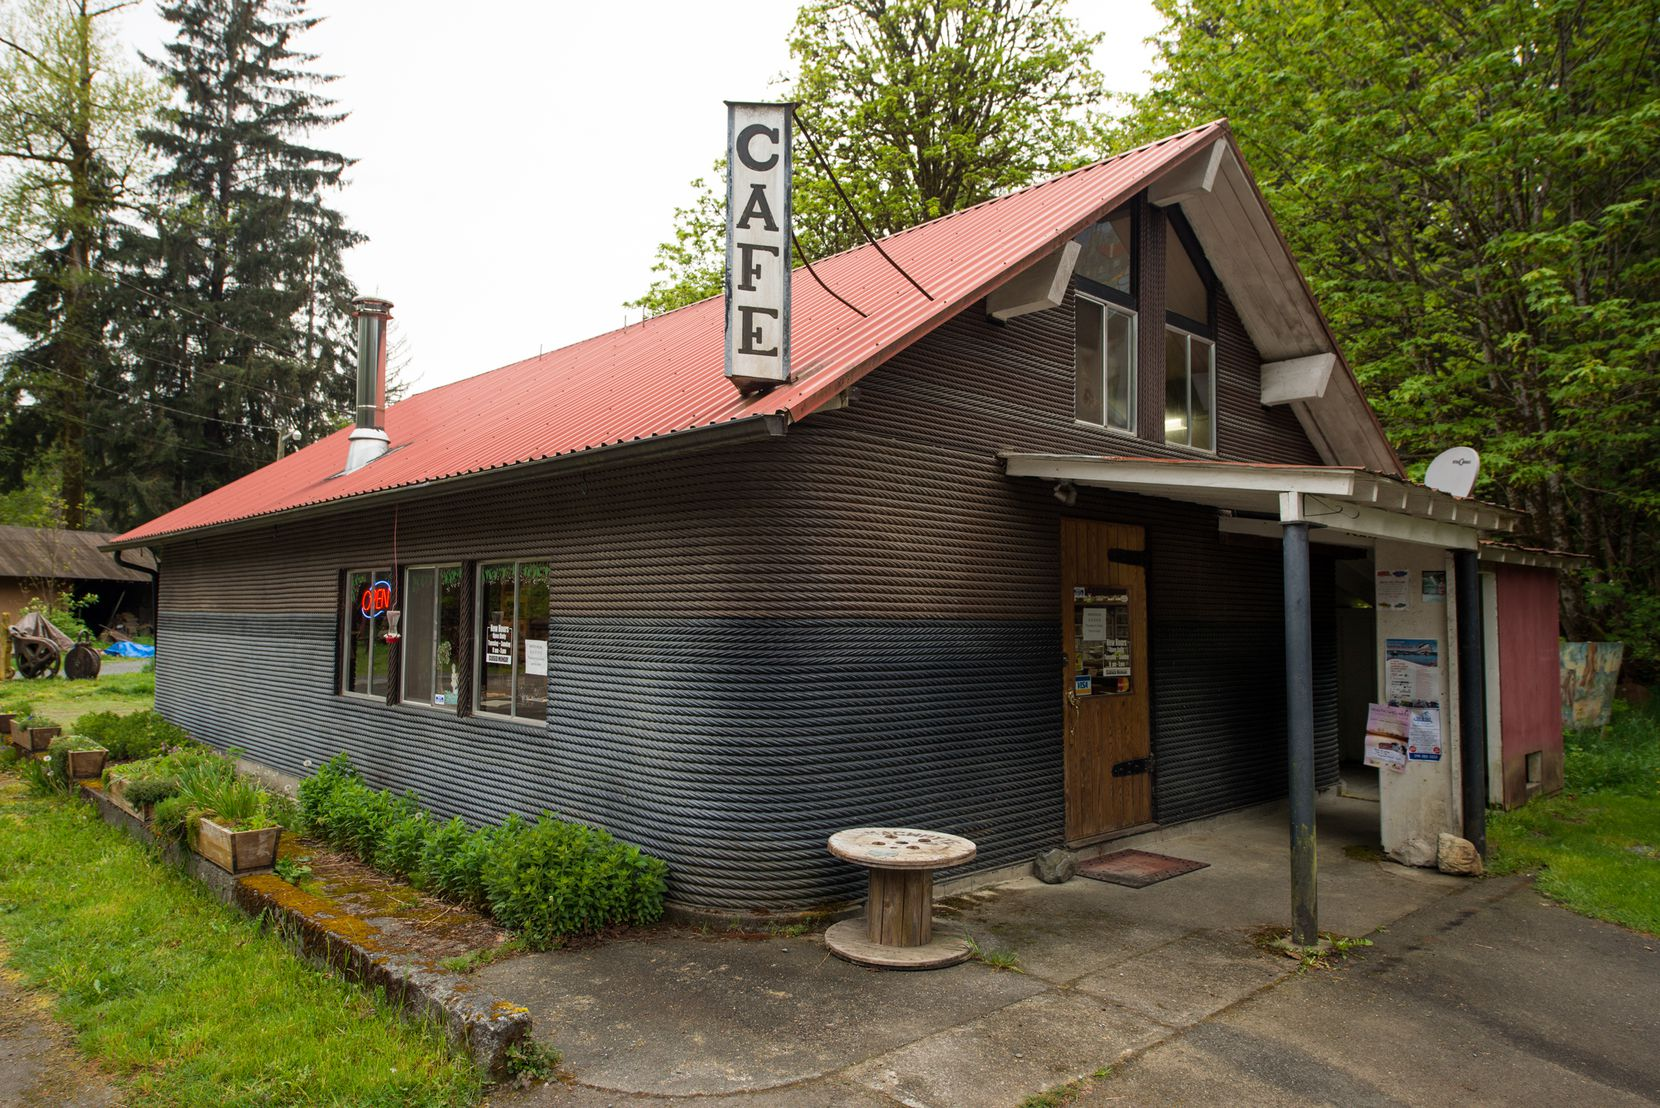 The landmark Cable Cookhouse Cafe in Sayward, northern Vancouver Island.